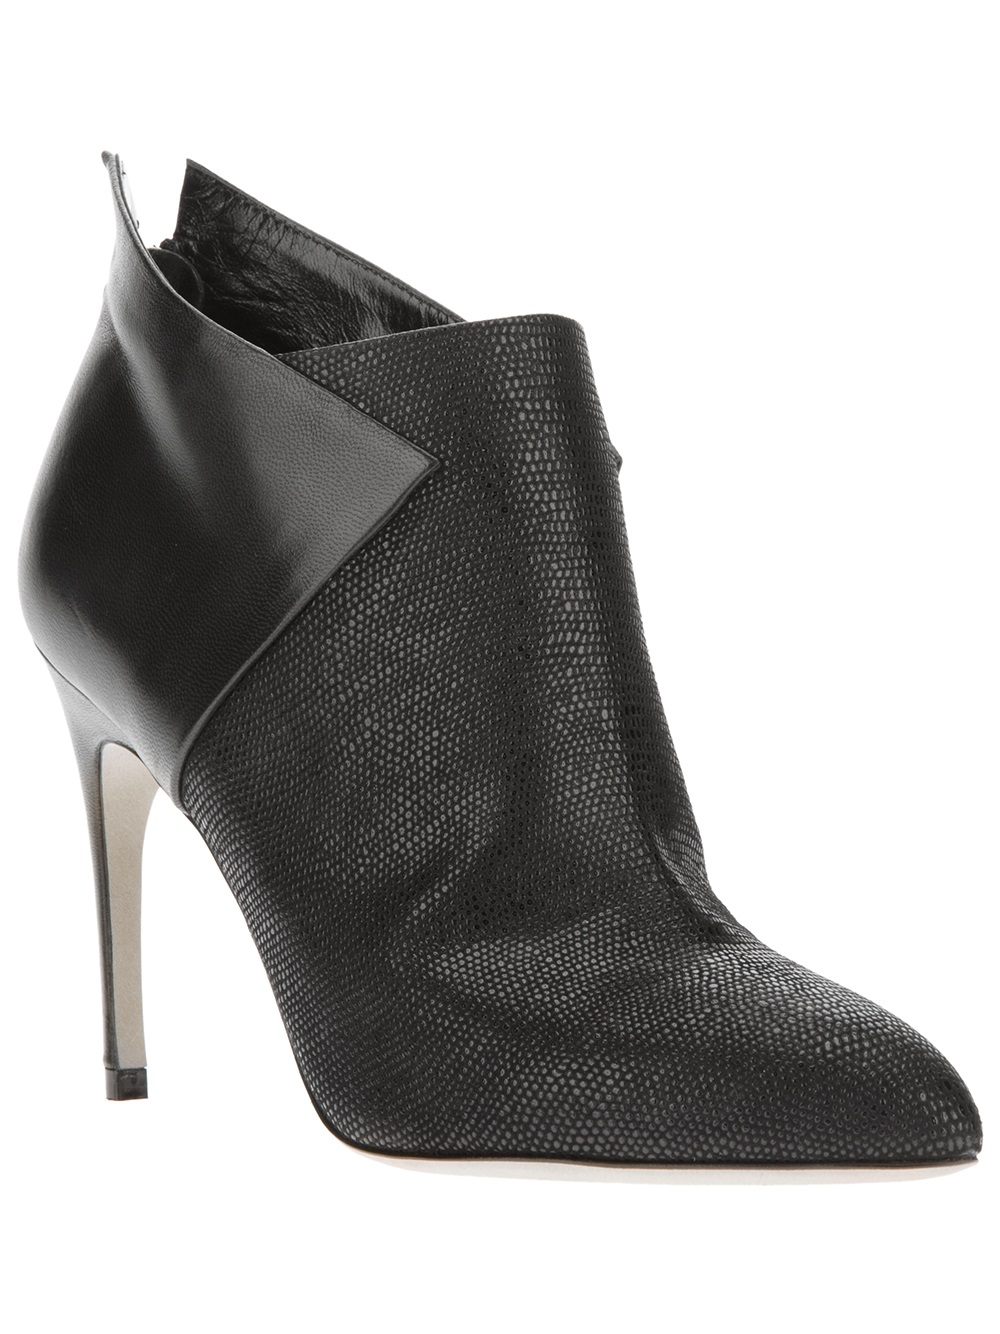 Sergio Rossi Embossed Suede Heeled Boots In Black Lyst